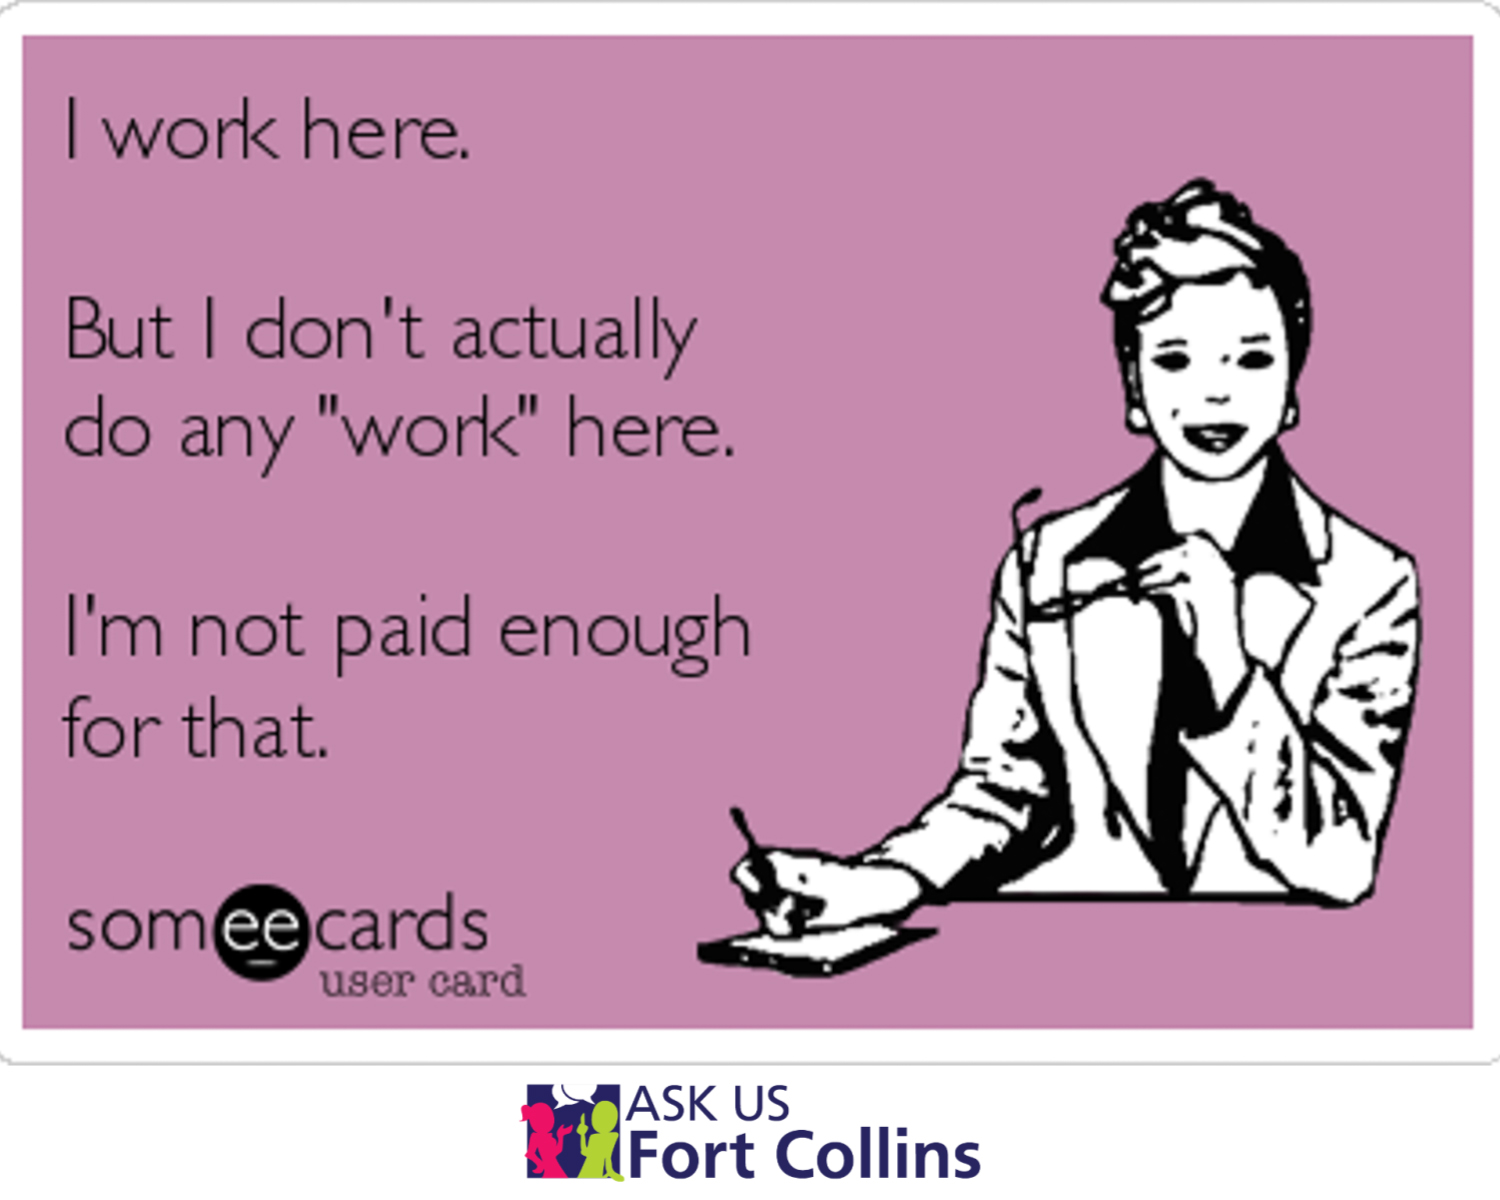 should girls go to work